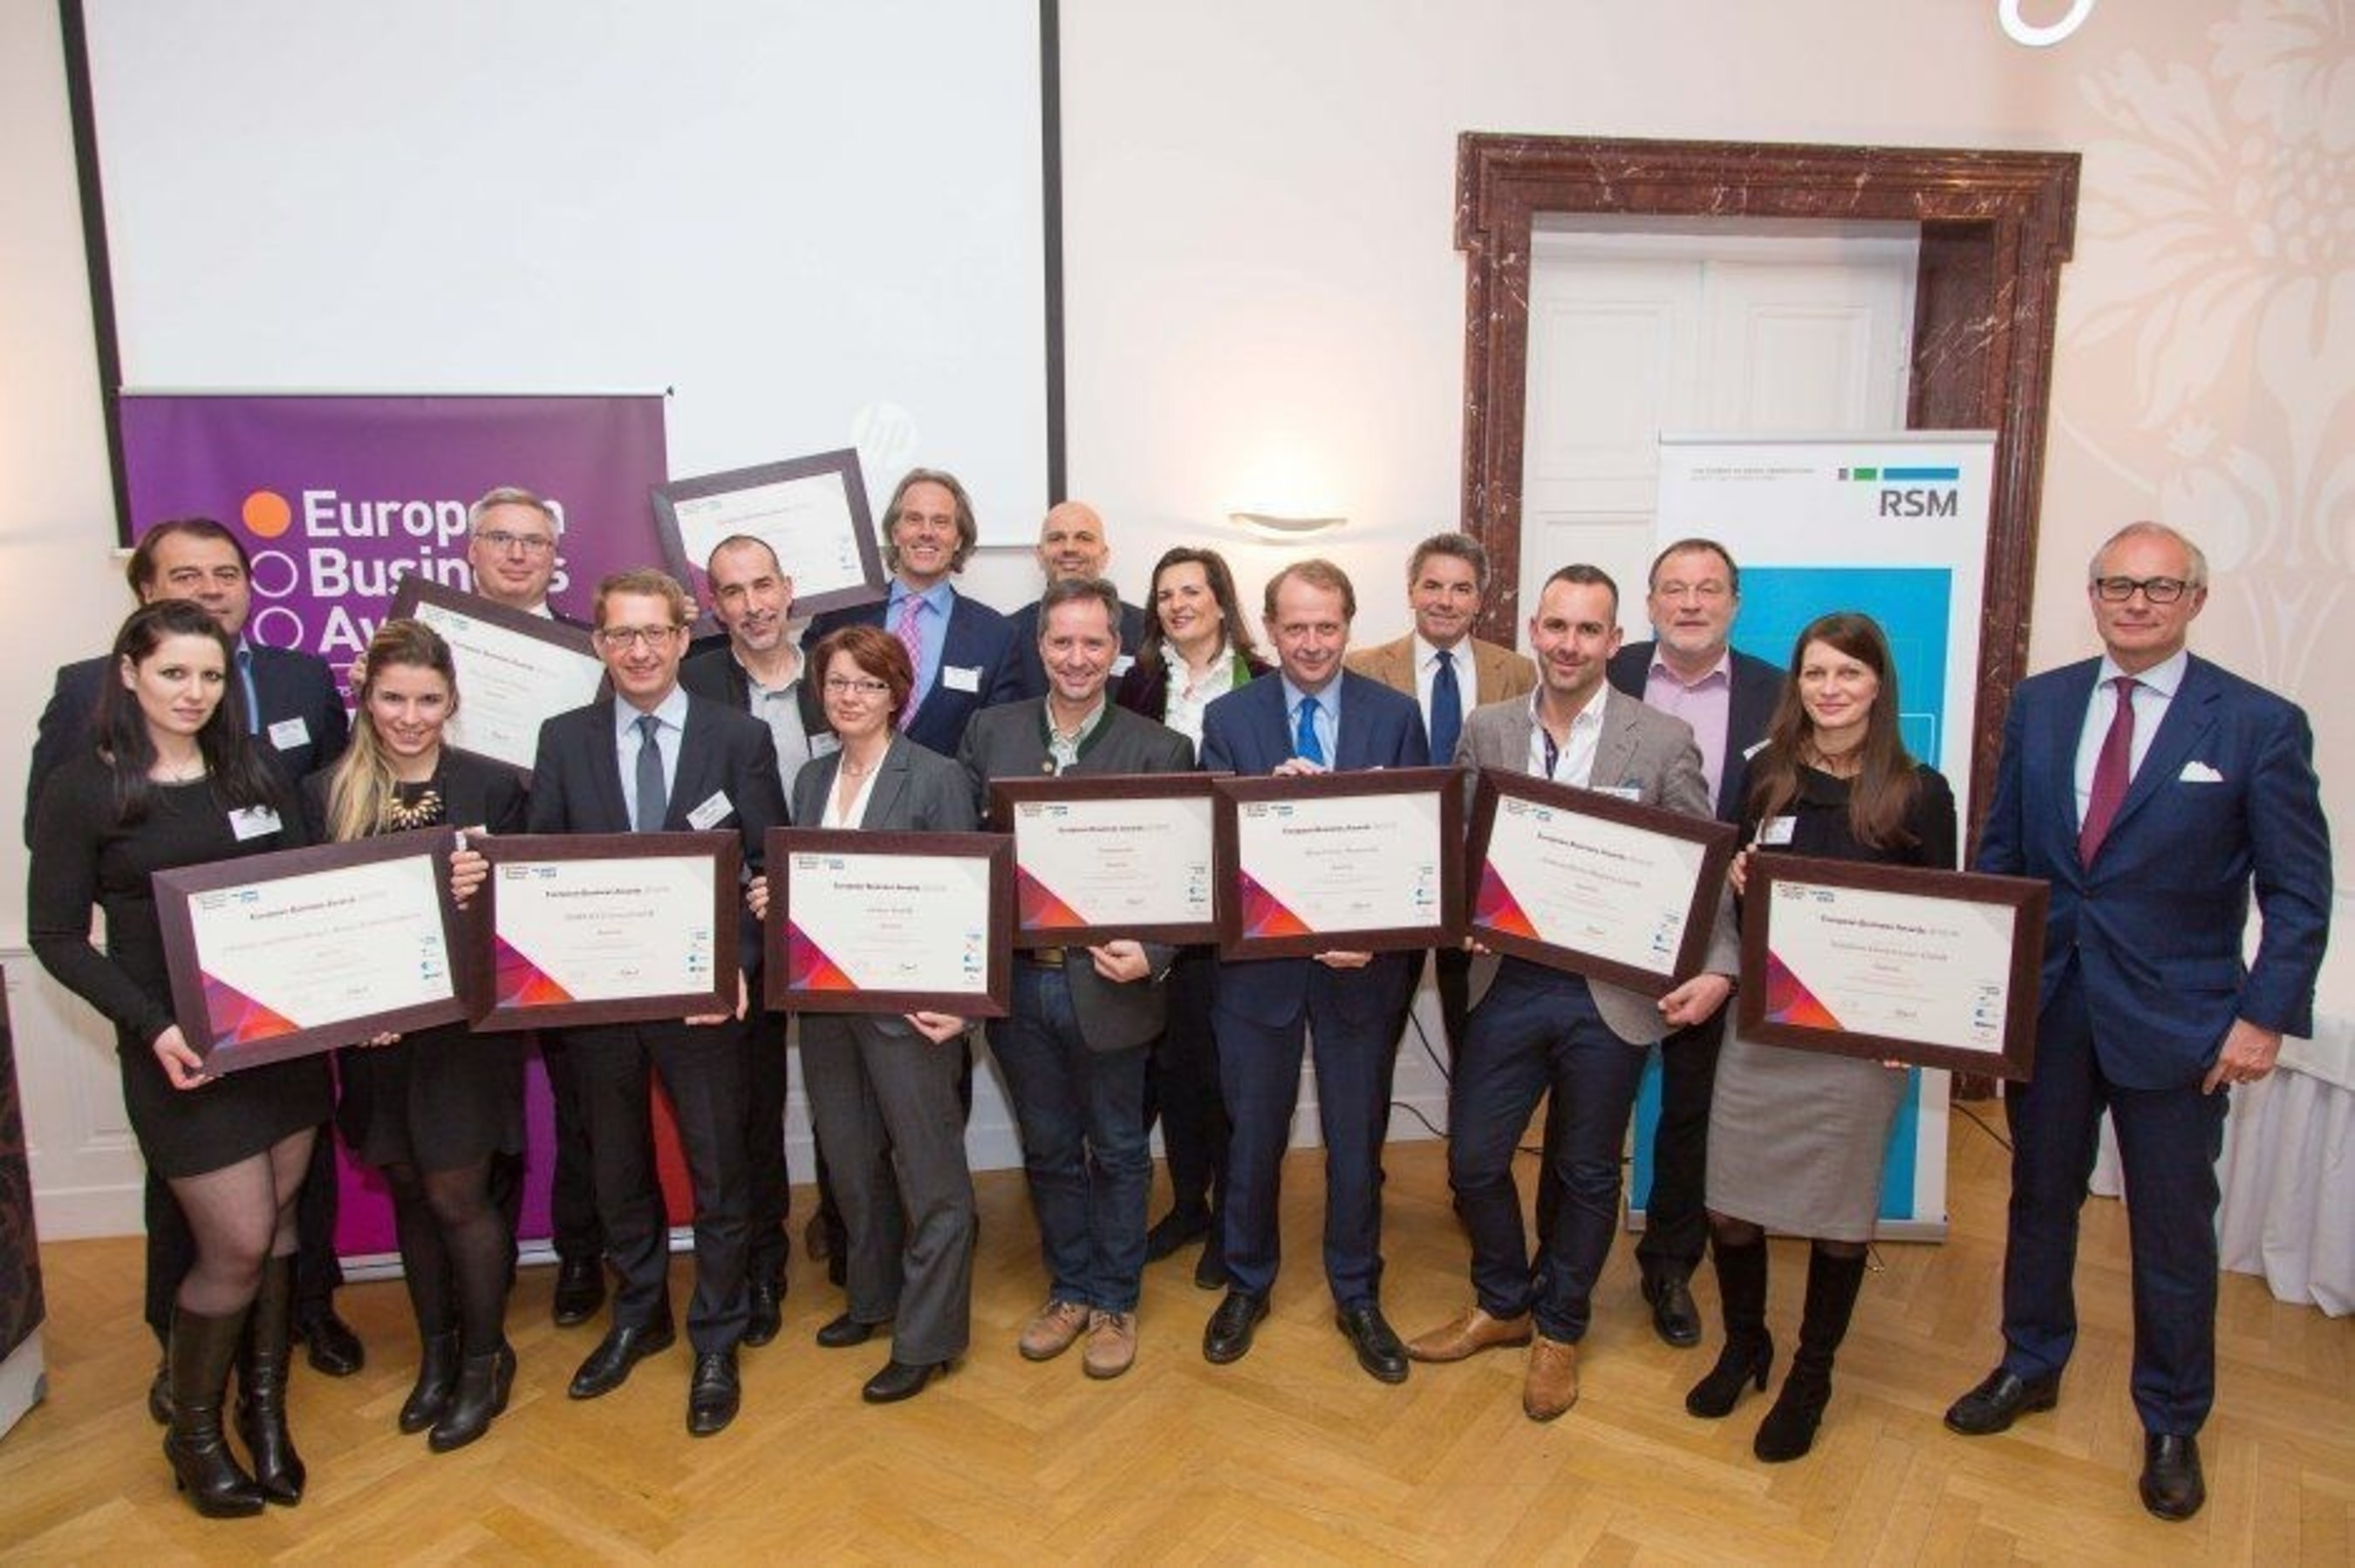 Austrian National Champions in the European Business Awards (PRNewsFoto/European Business Awards) (PRNewsFoto/European Business Awards)